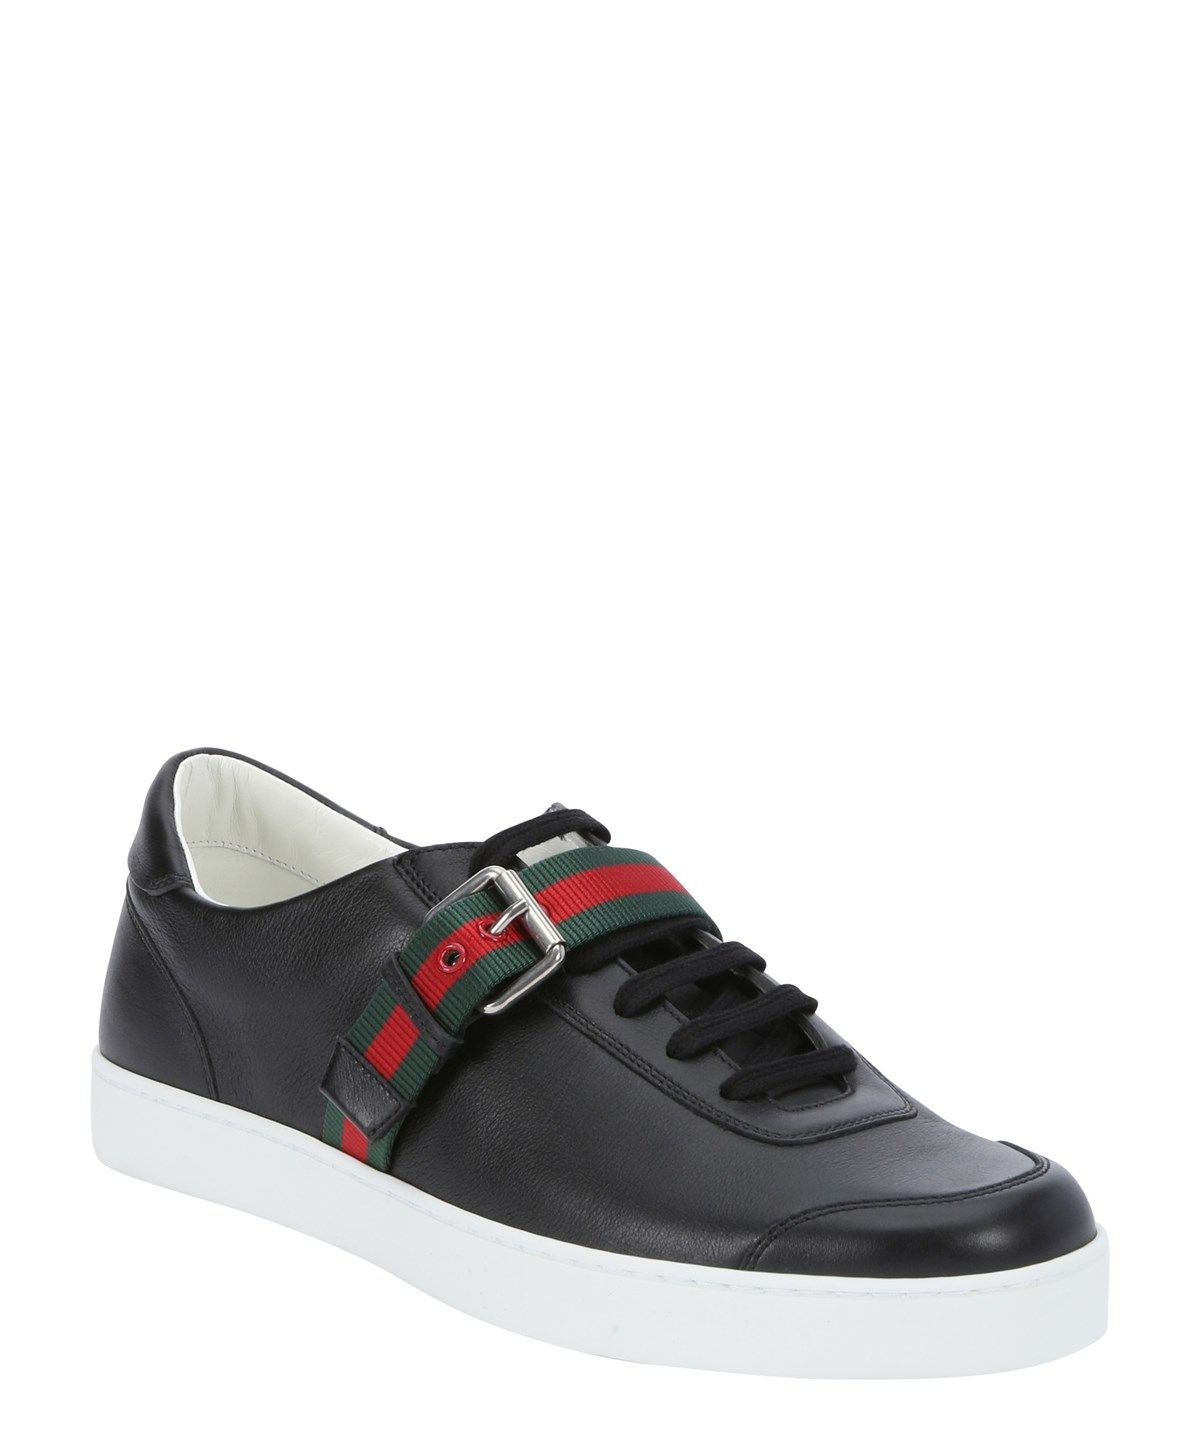 316dbdaa38a GUCCI Black Leather Web-Stripe Strap Lace-Up Sneakers .  gucci  shoes   sneakers